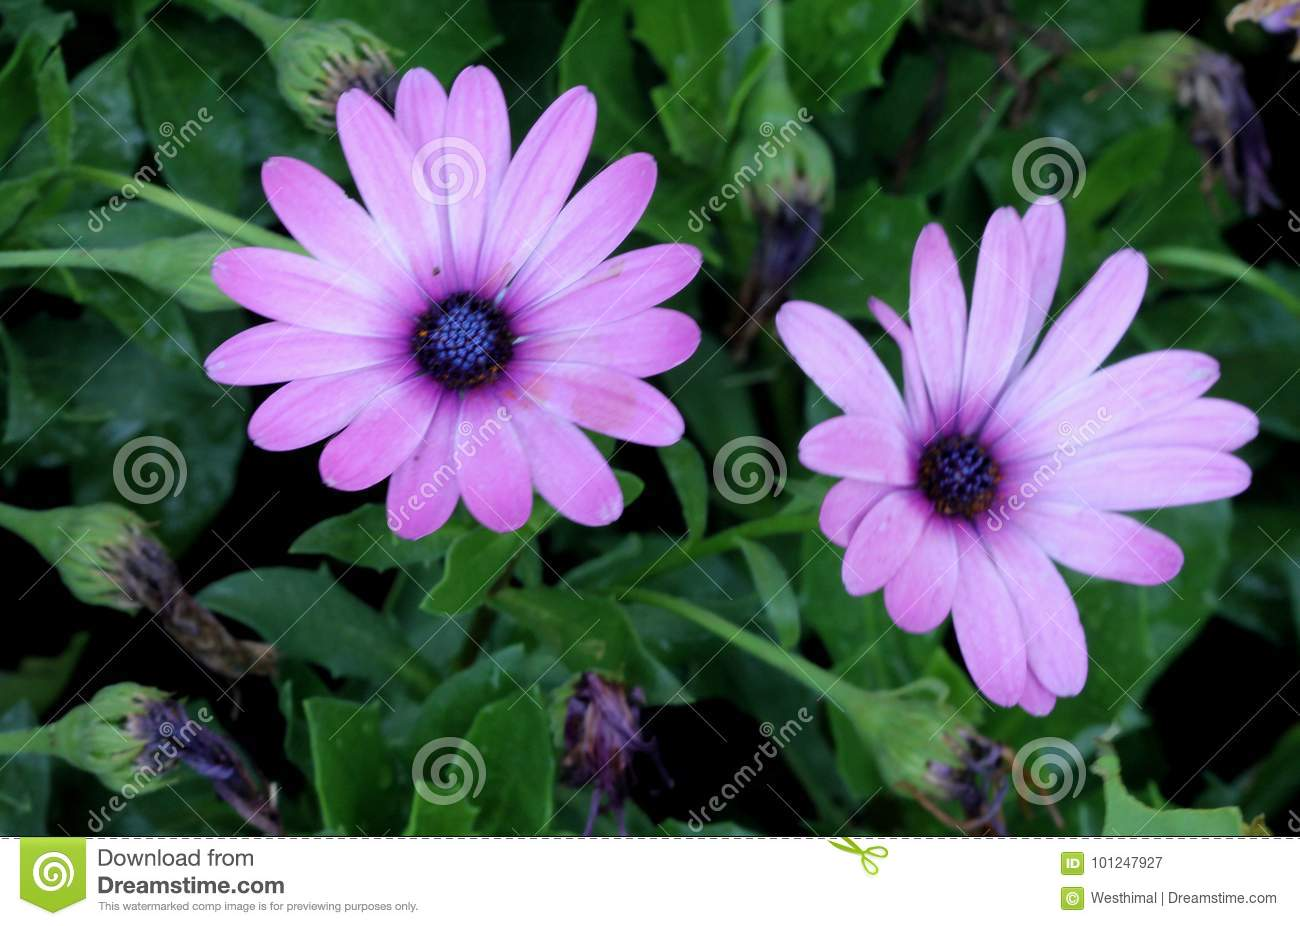 Osteospermum ecklonis african daisy stock image image of like osteospermum ecklonis african daisy subshrub with rigid pointed leaves and stunning pale pink daisy like flowers with purplish black disc suitable for izmirmasajfo